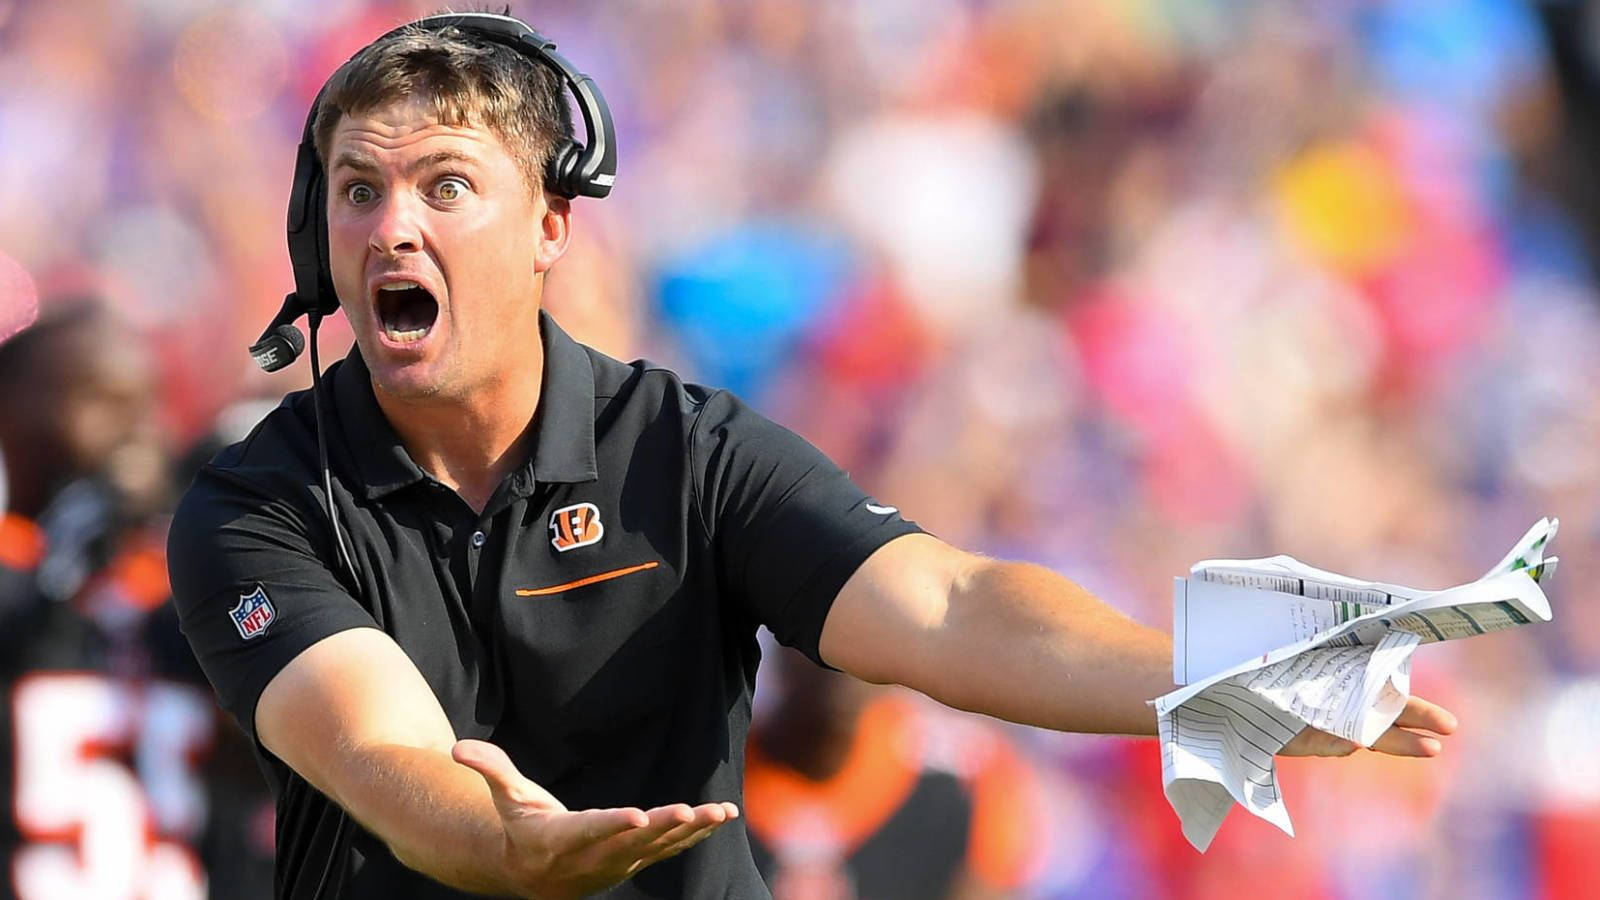 08 Bengals are a disaster. Is Zac Taylor best they could do?